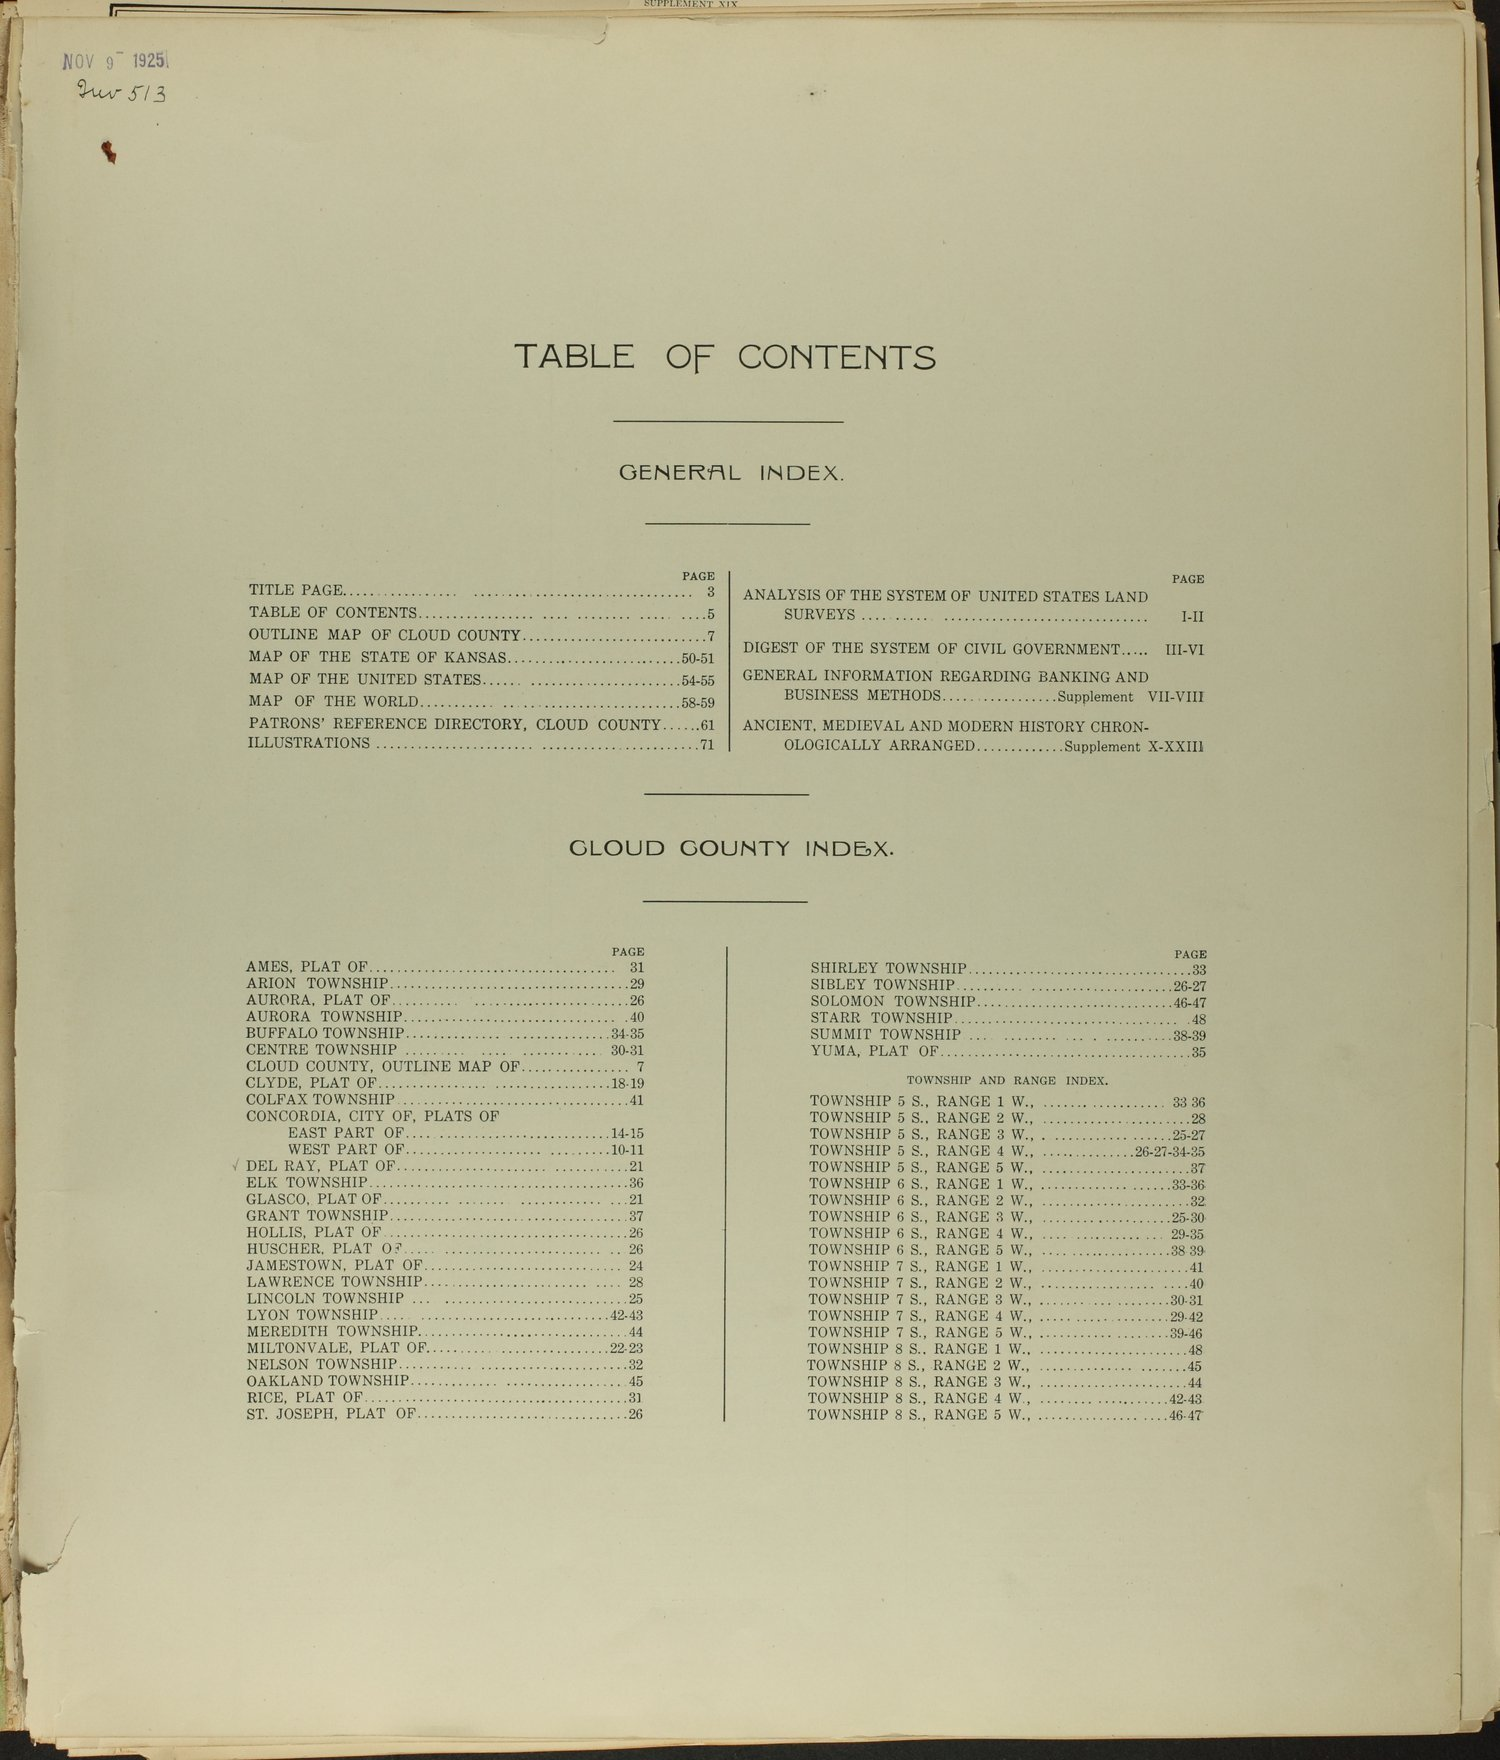 Standard atlas of Cloud County, Kansas - Table of Contents